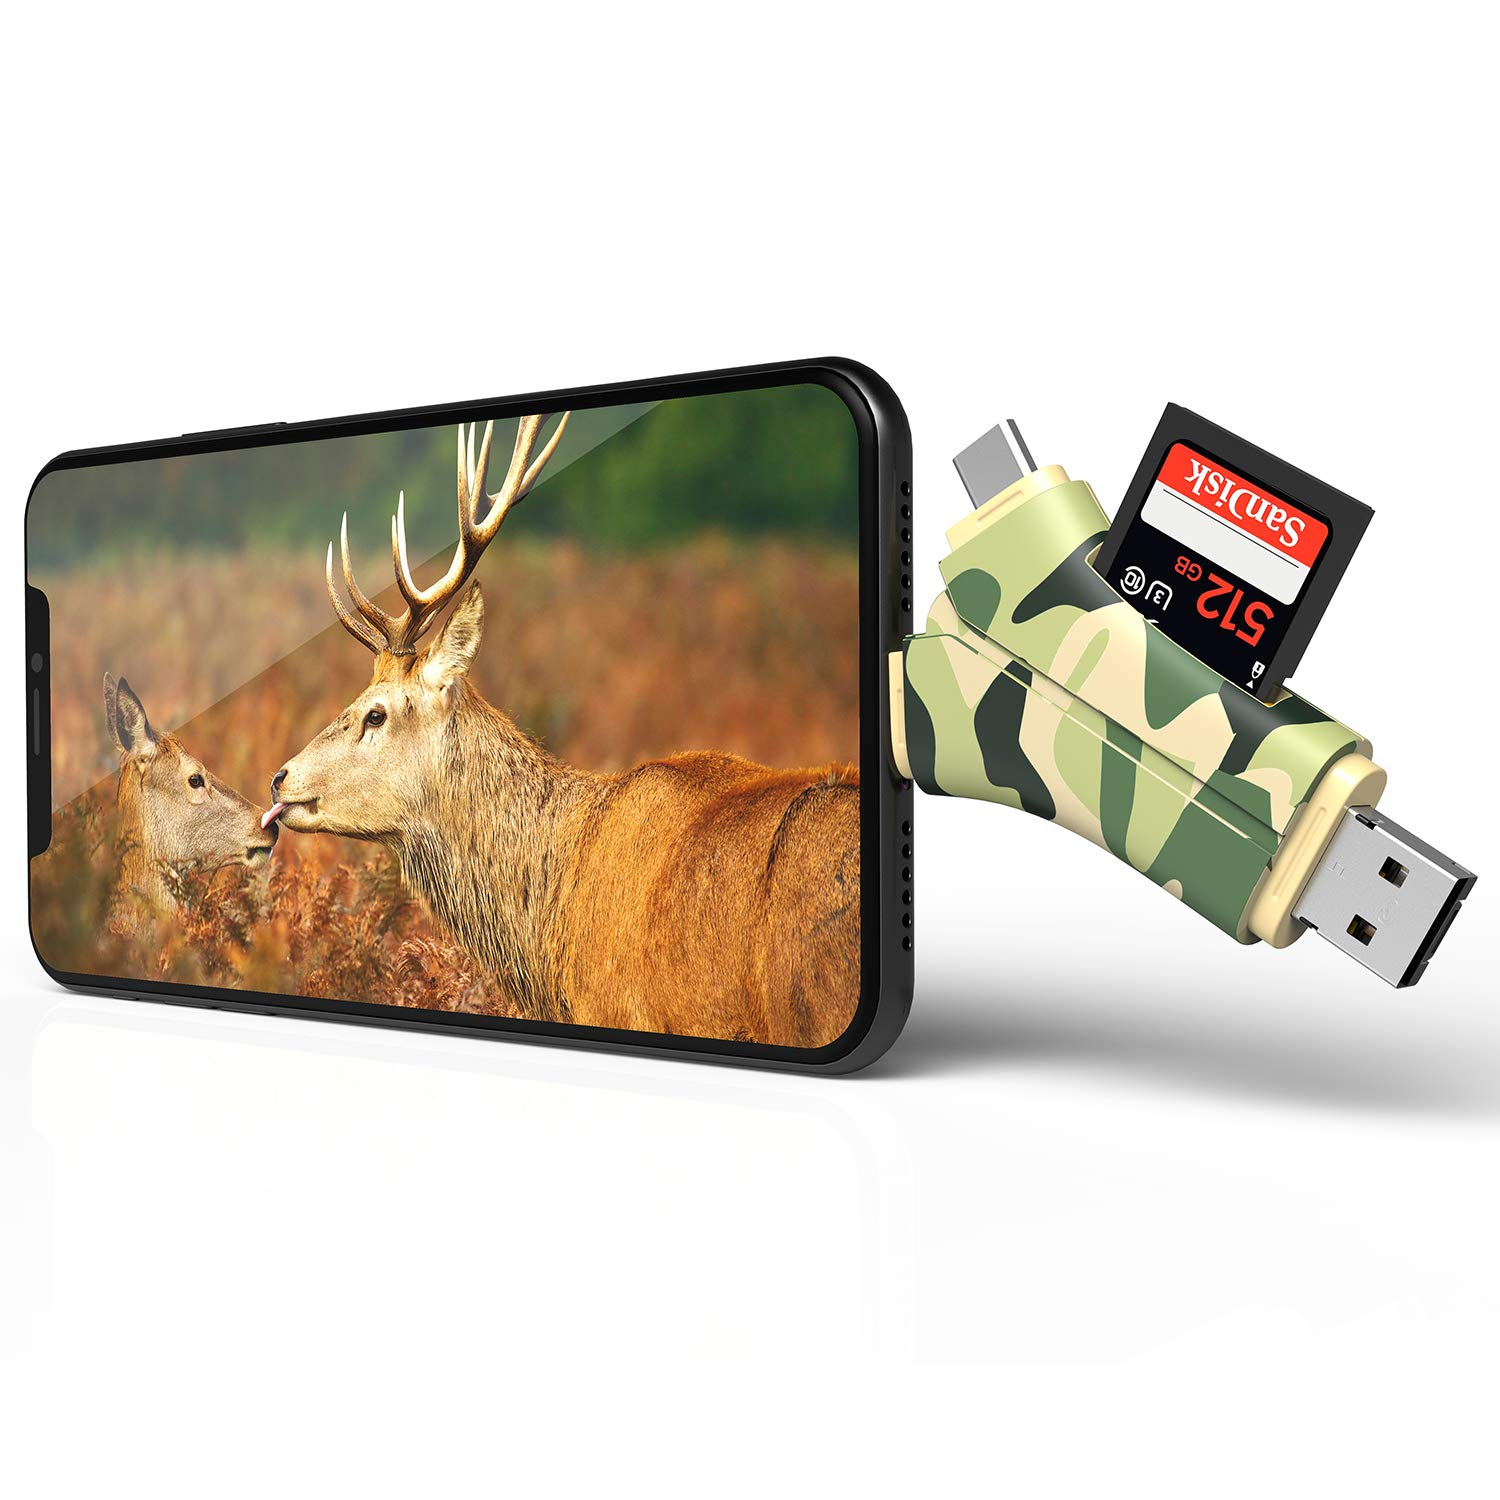 Trail Camera Viewer Game Camera Reader - Trail Hunter View Hunting Photos and Videos or any Wildlife Game Camera on Smartphone for for iPad Mac & Android, SD & Micro SD by E-thinker